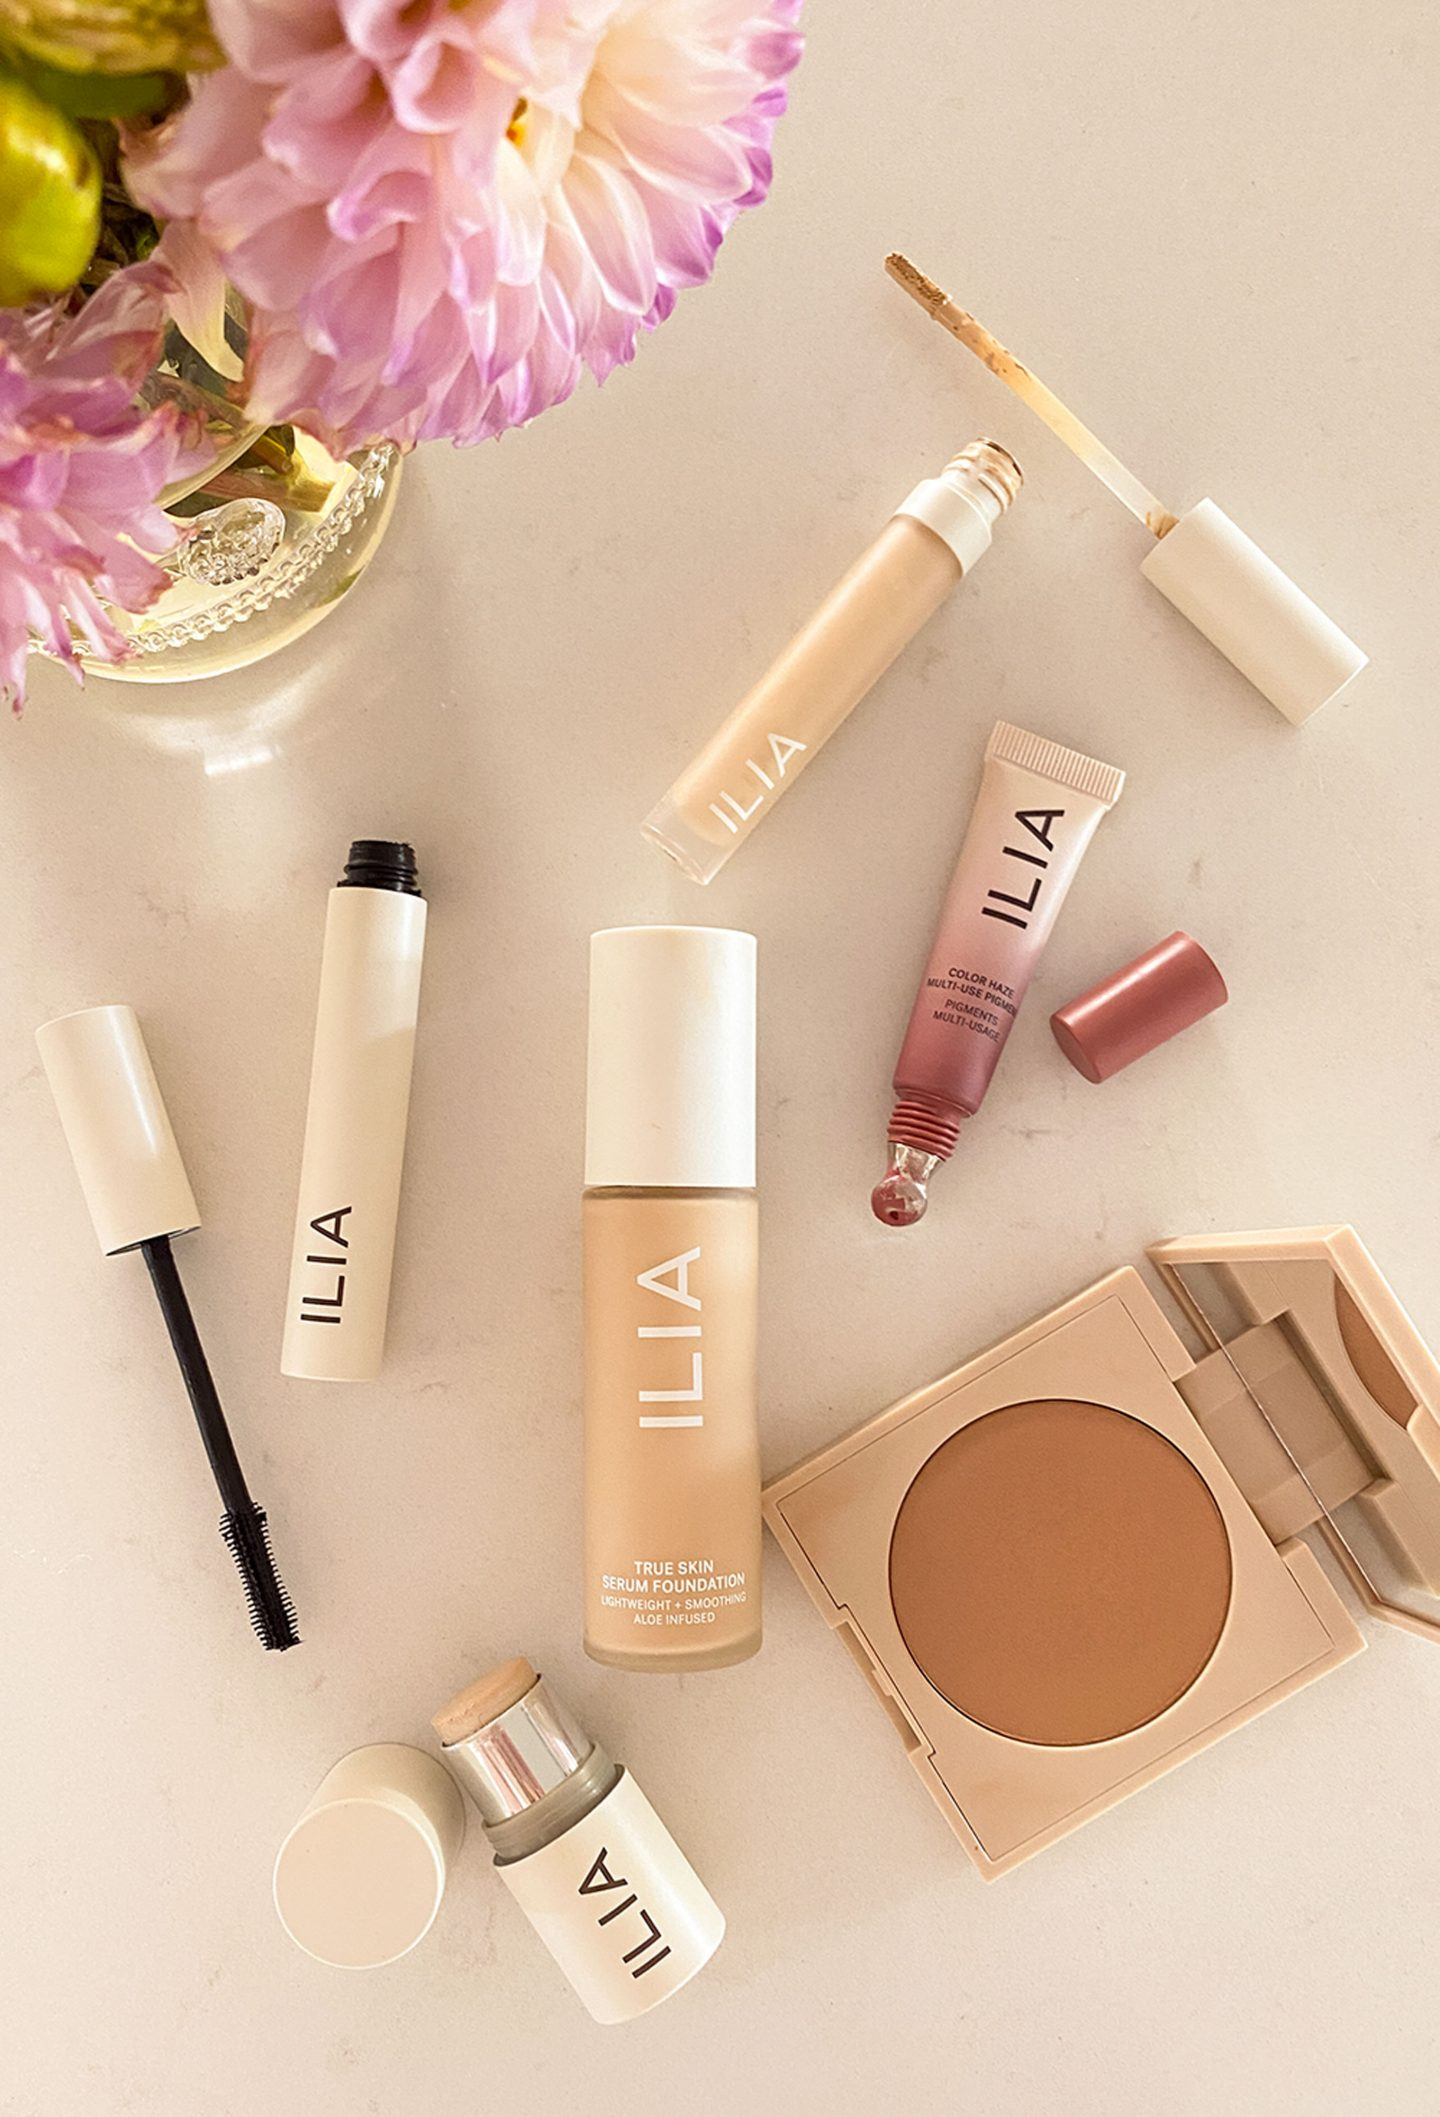 Ilia Beauty Review by Ashley Brooke and why she loves clean beauty